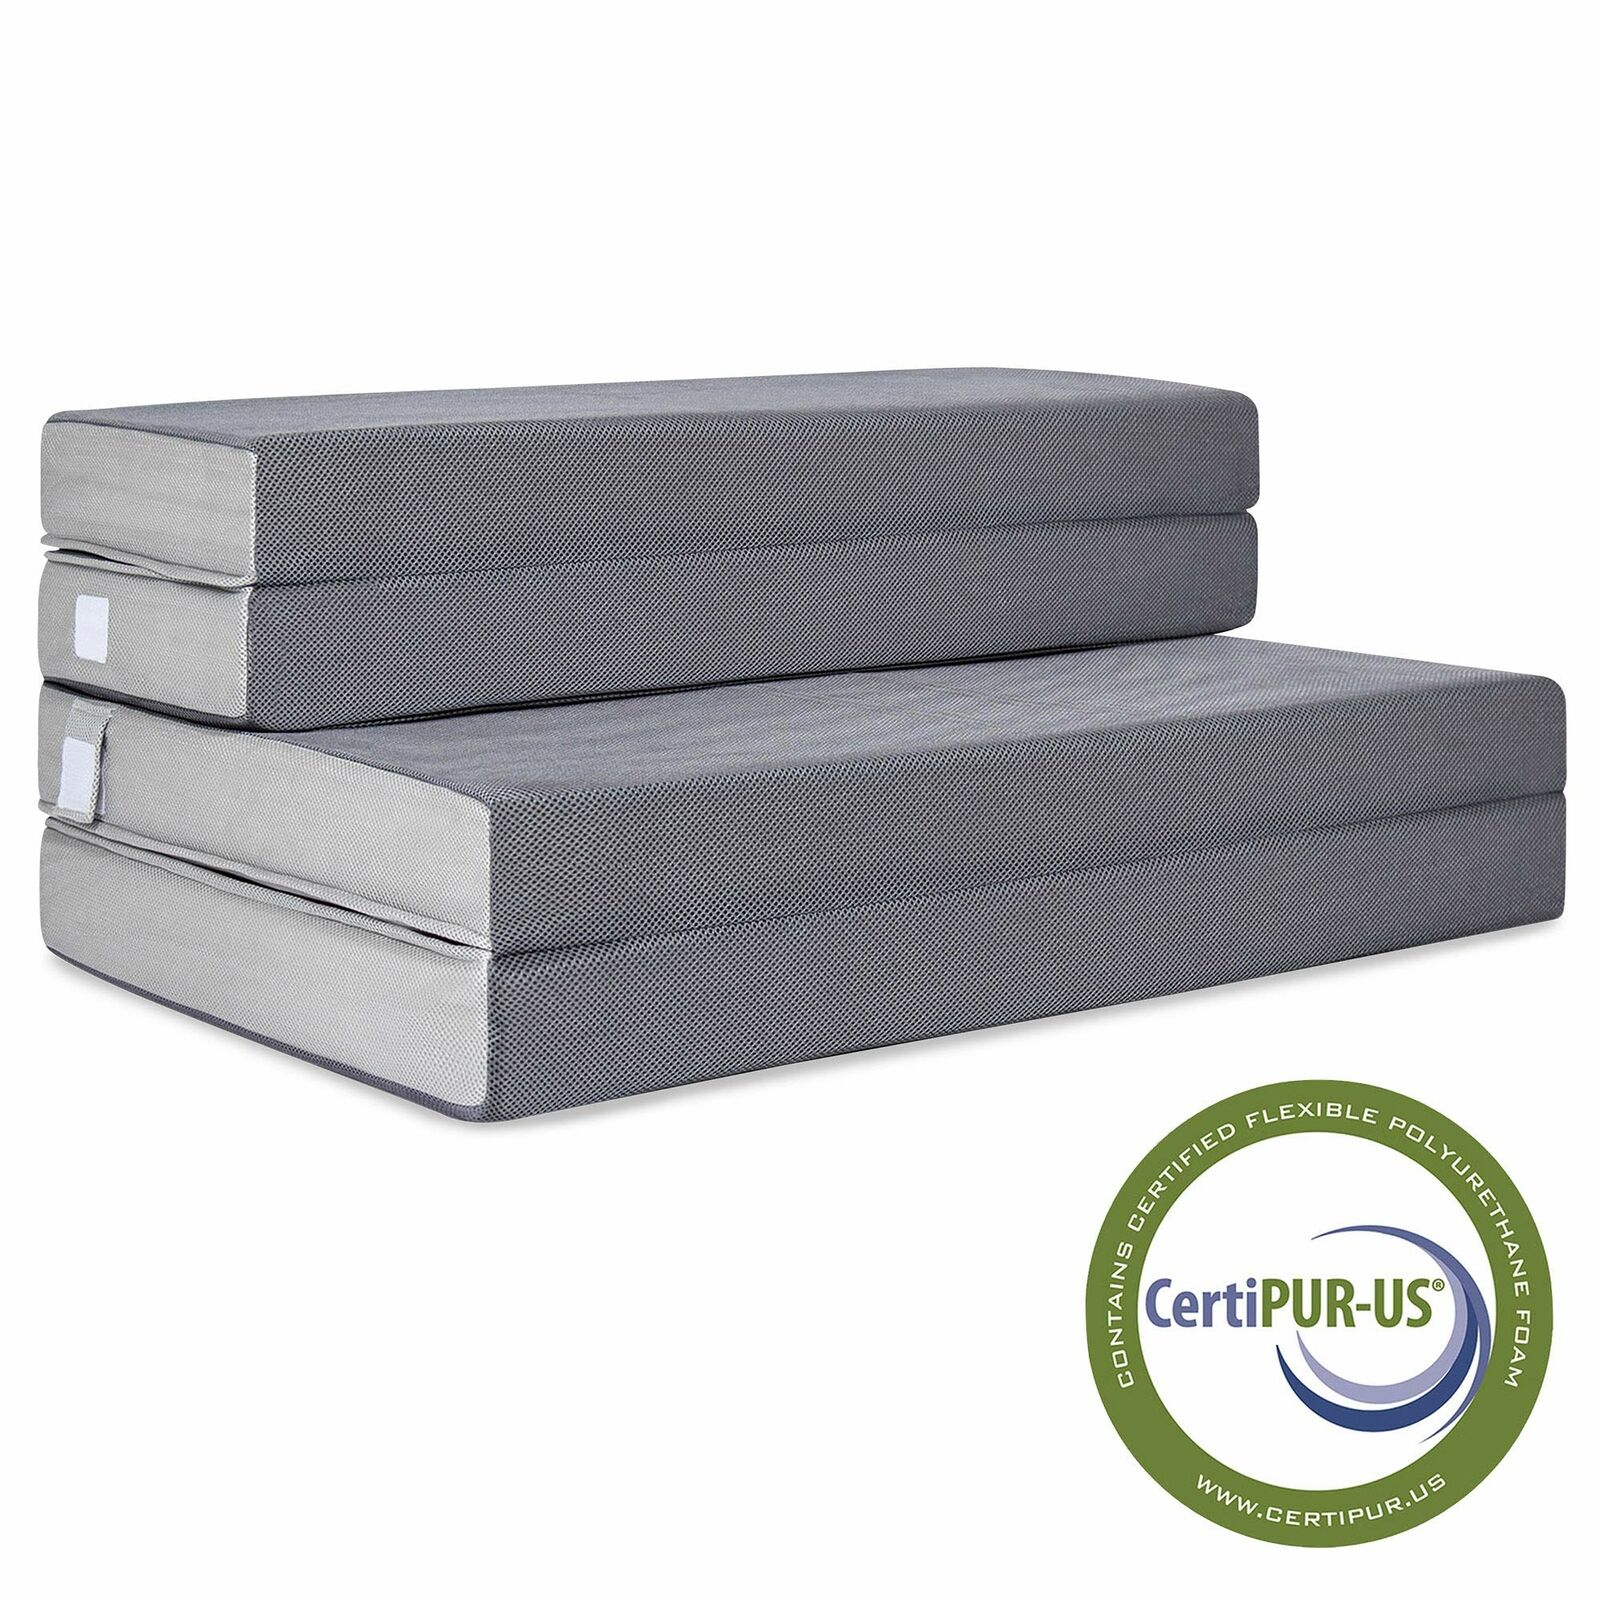 4  portable Folding Full Mattress Foam Cushion Pad Sleep Camping Guests de plein air